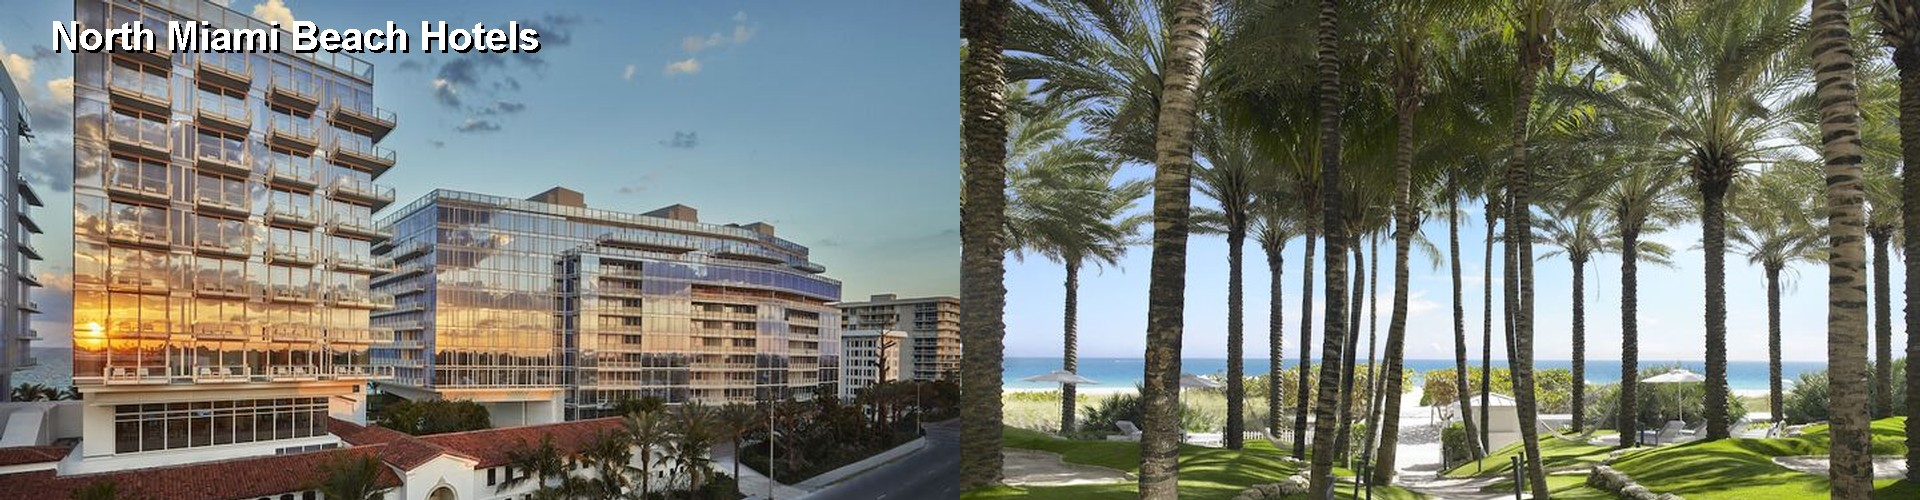 5 Best Hotels near North Miami Beach